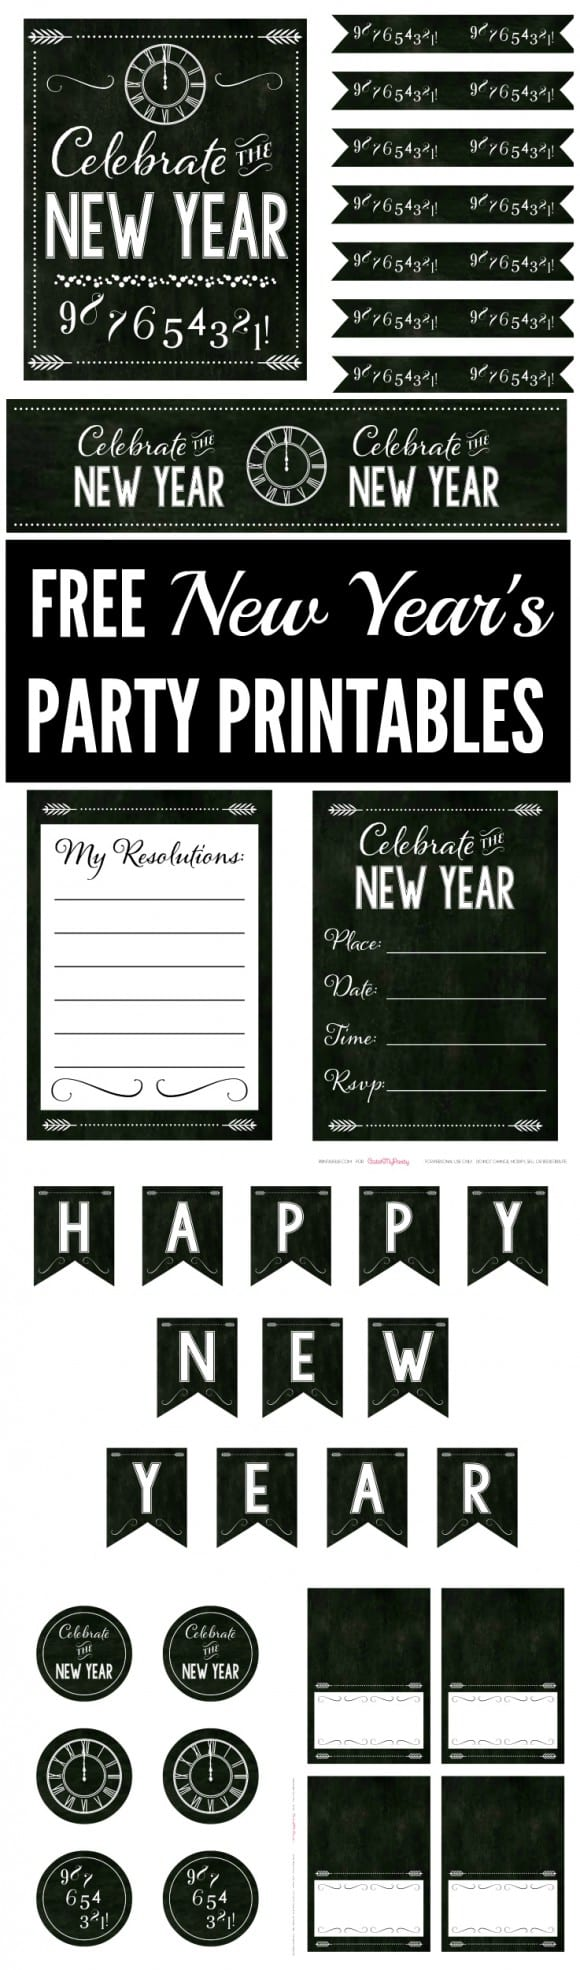 Free Chalkboard New Year's Party Printables | CatchMyParty.com